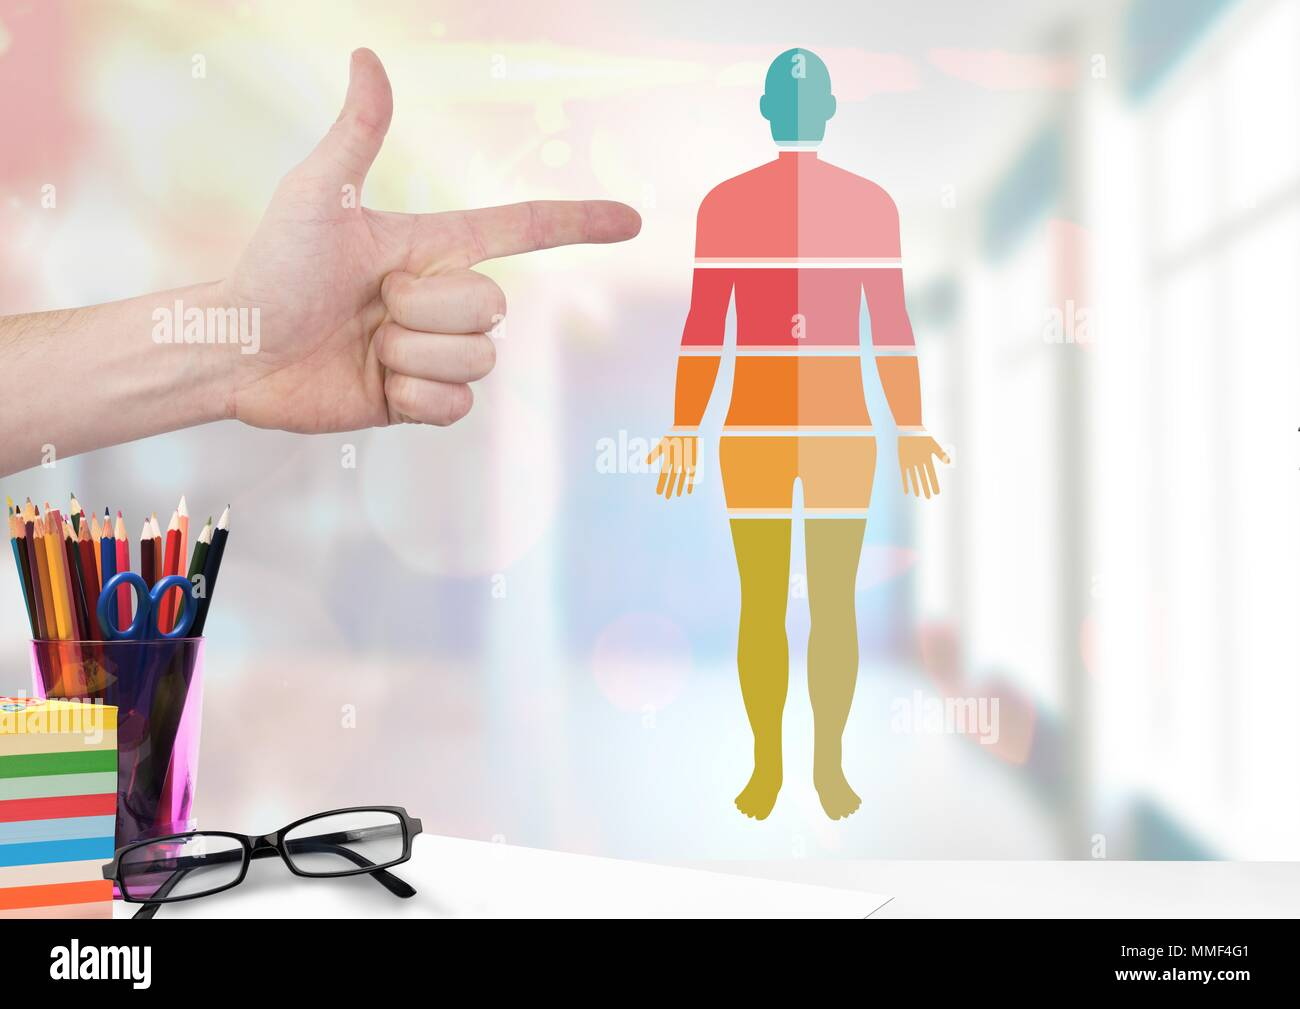 Human Body sections and hand pointing - Stock Image